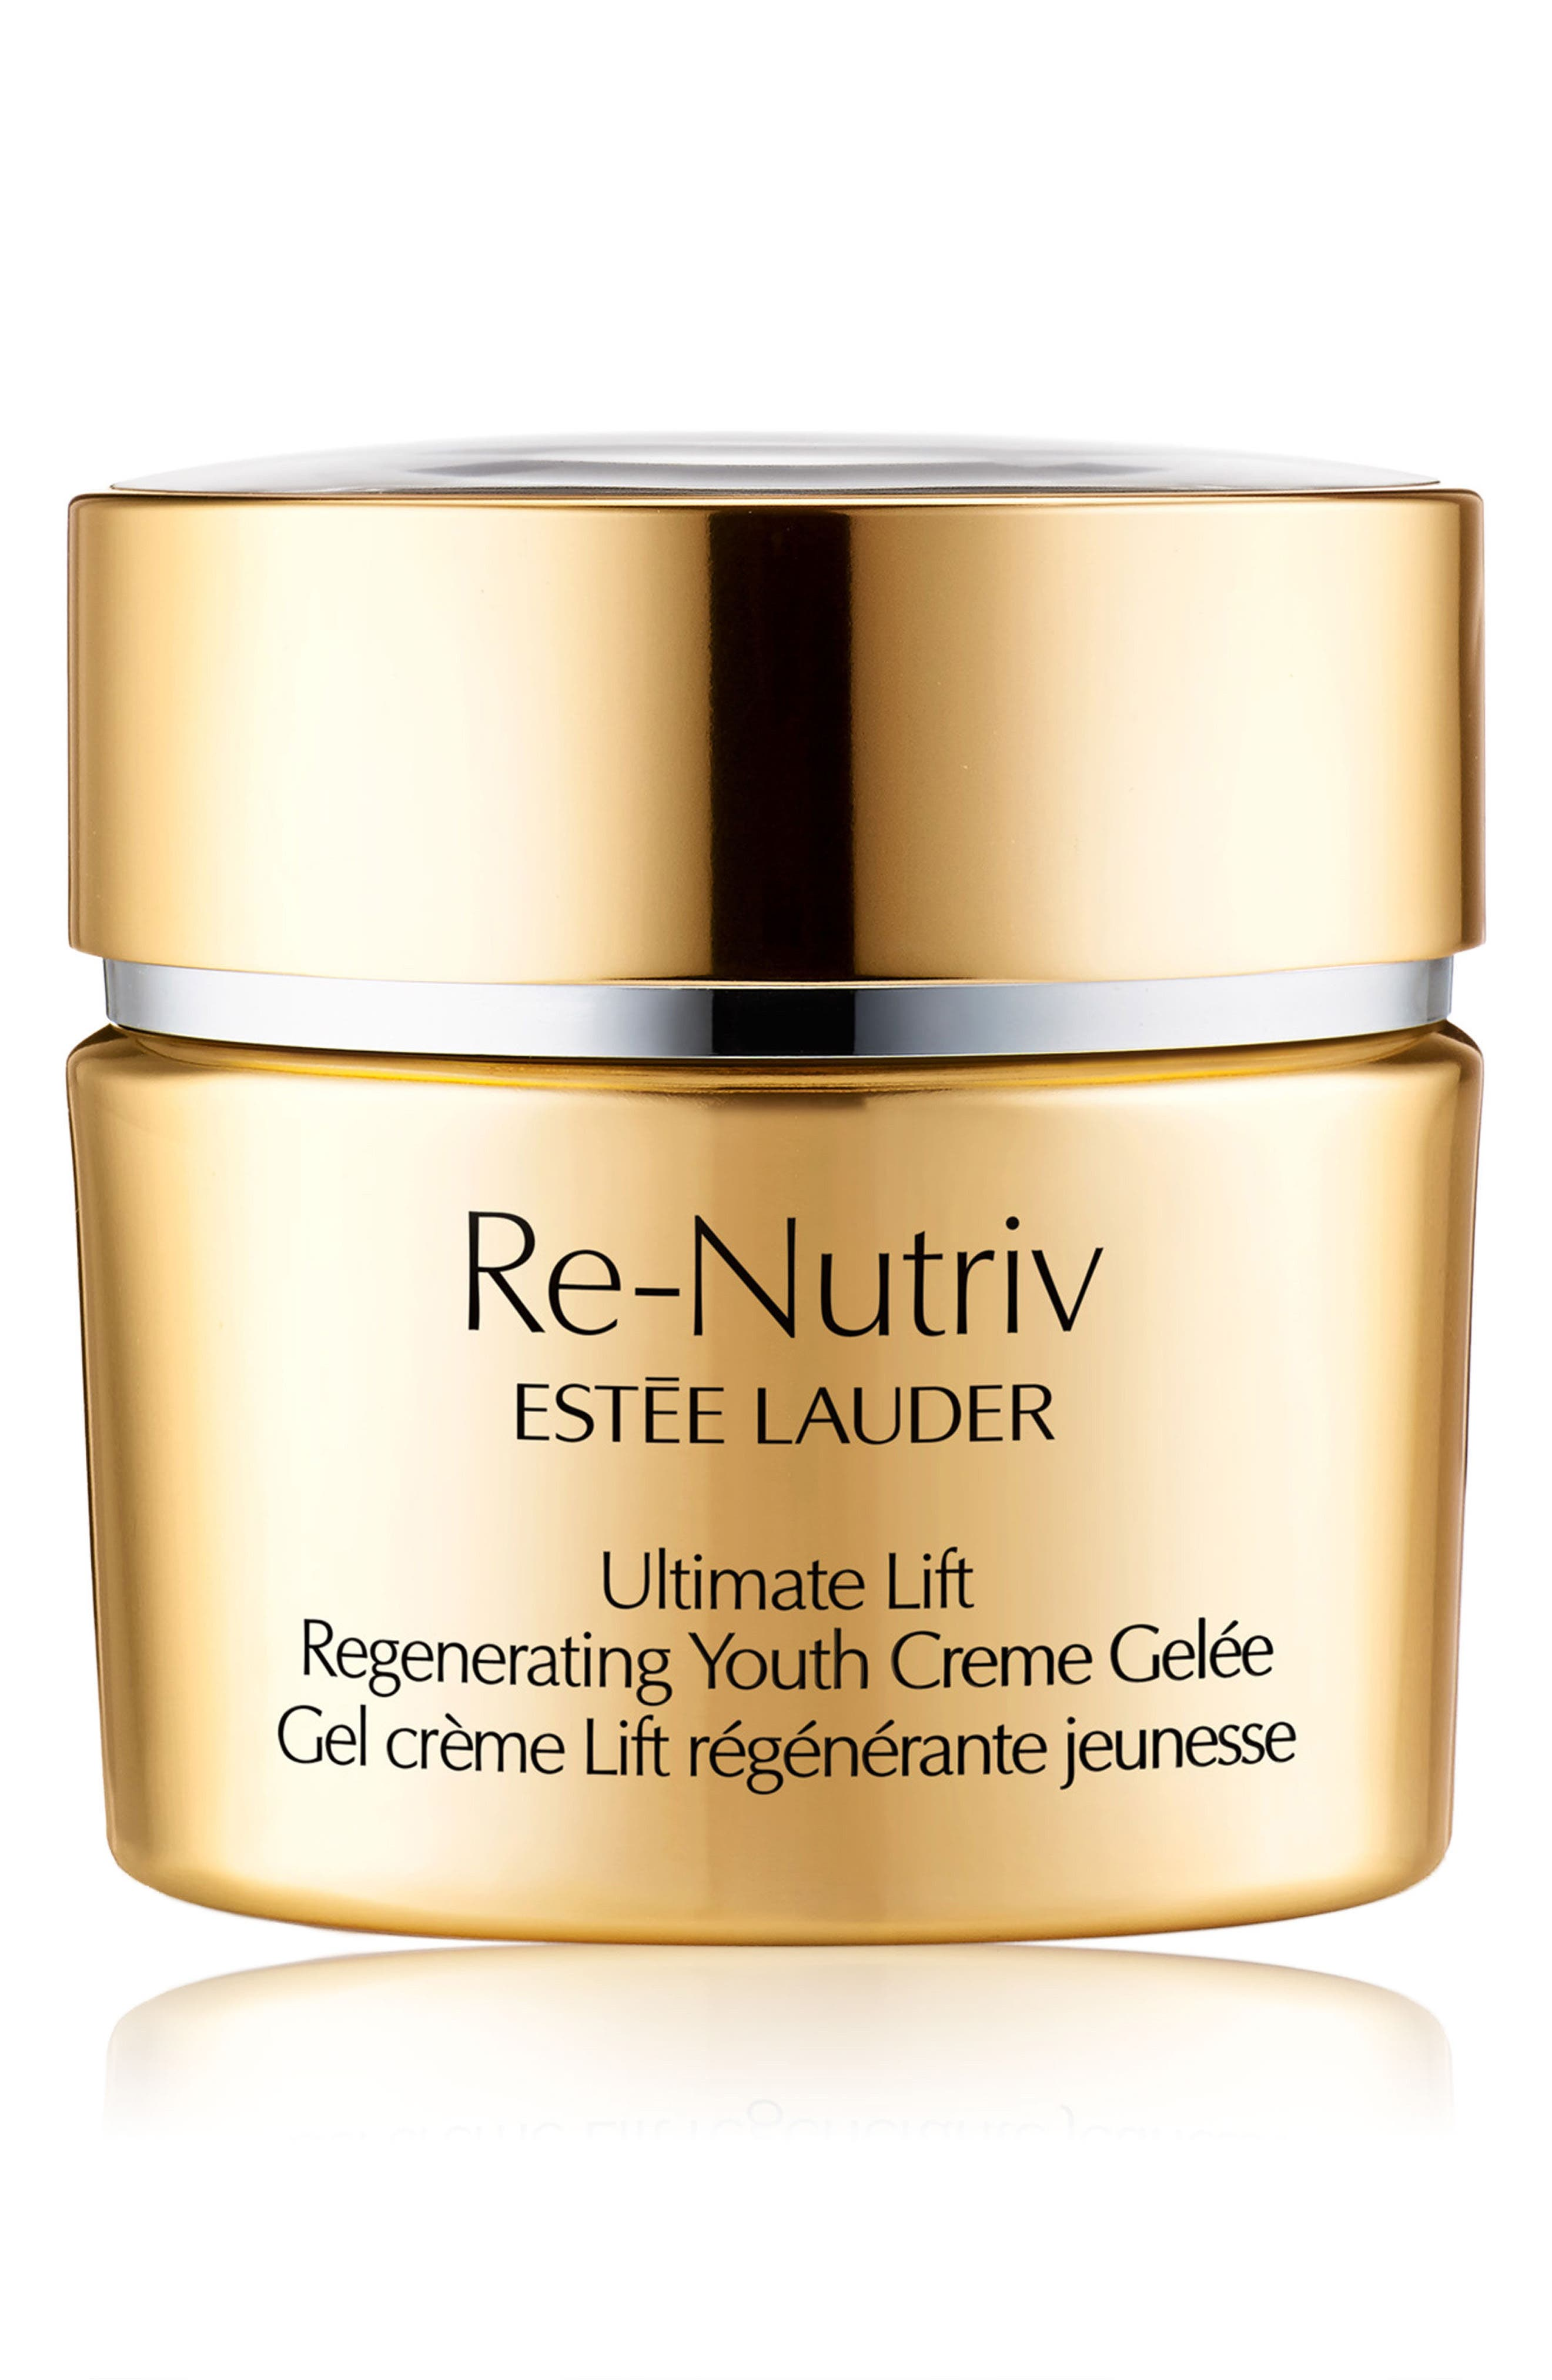 Re-Nutriv Ultimate Lift Regenerating Youth Creme Gelée,                             Main thumbnail 1, color,                             000